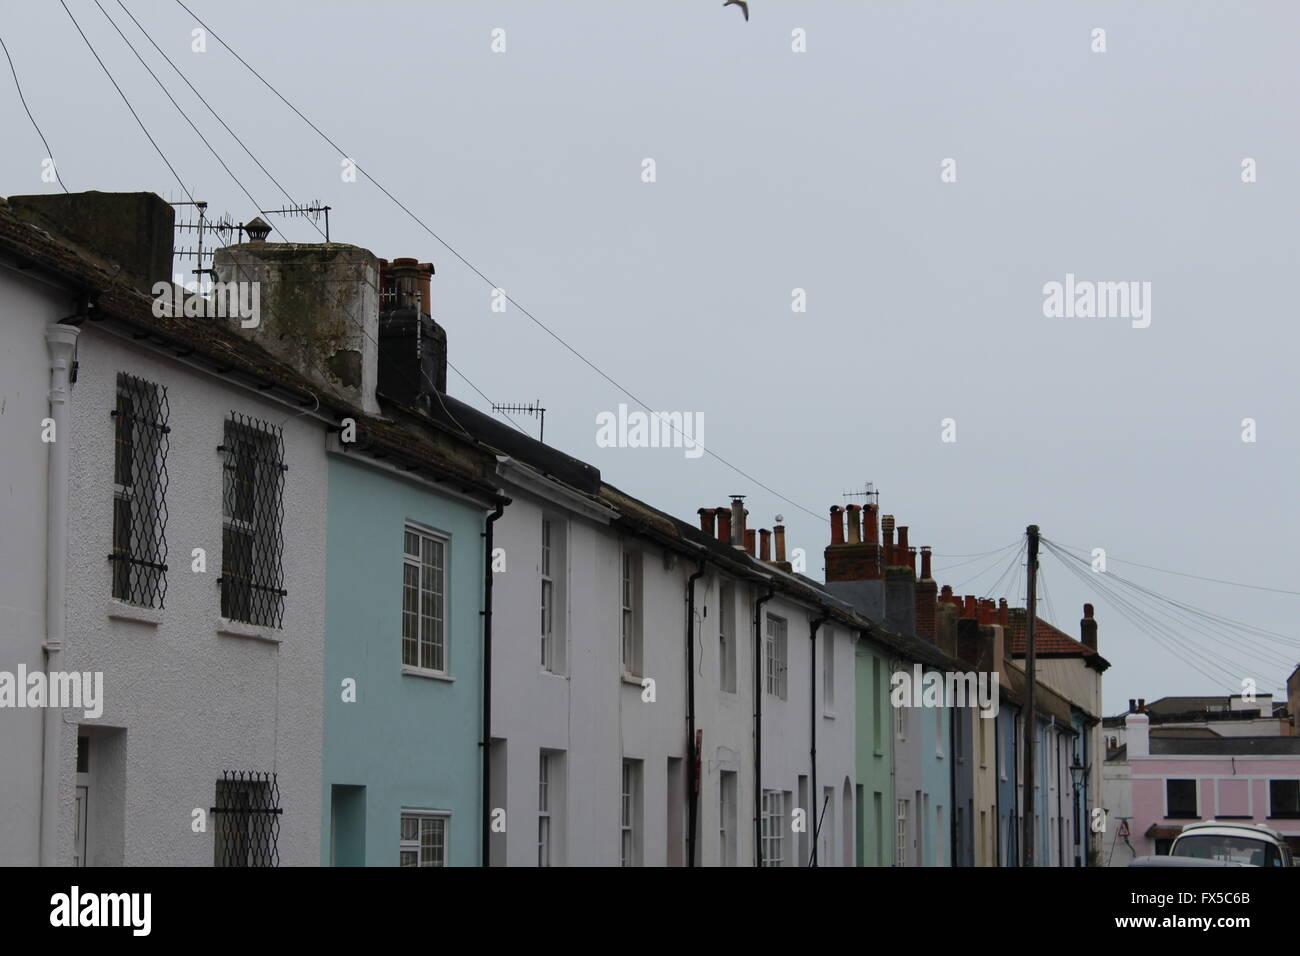 colourful houses - Stock Image